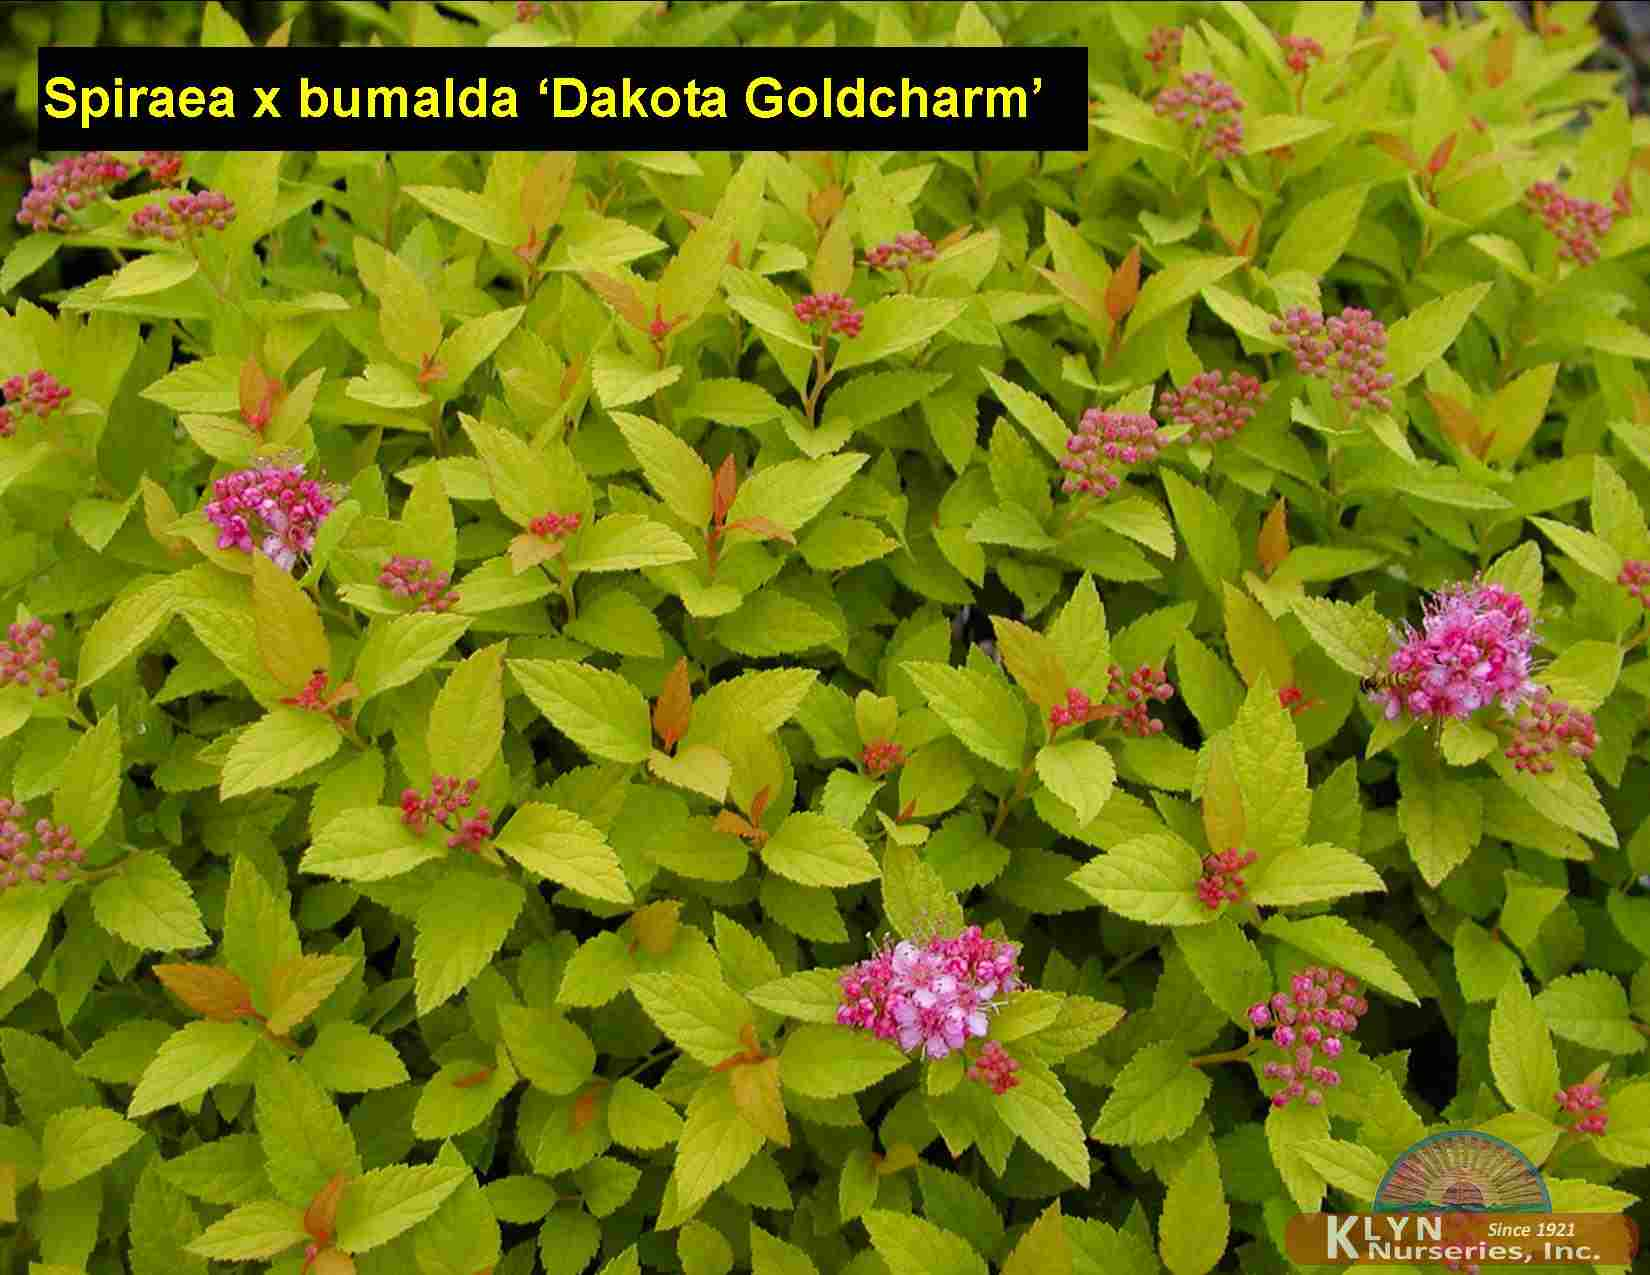 Spiraea X Bumalda Dakota Goldcharm Klyn Nurseries Inc